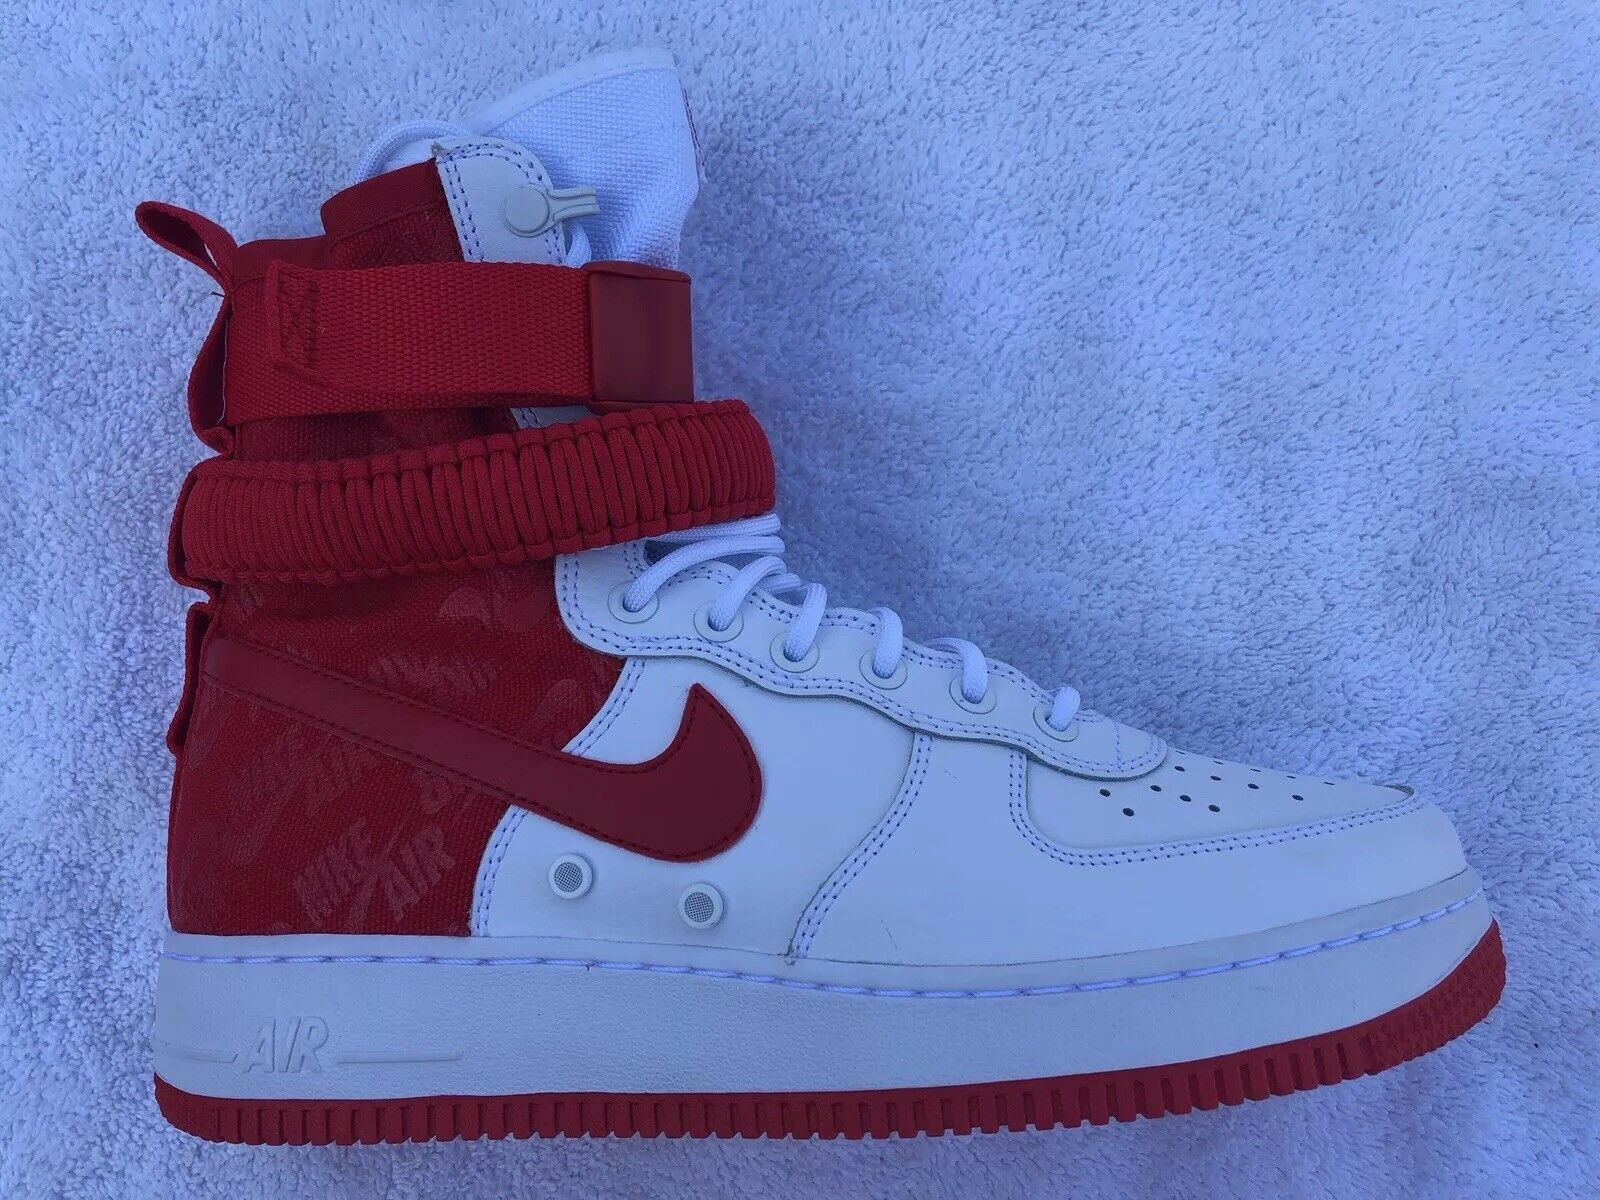 2018 Nike Air Force 1 High SF AF1 SZ 10.5 Special Field White Uni Red AR1955-100